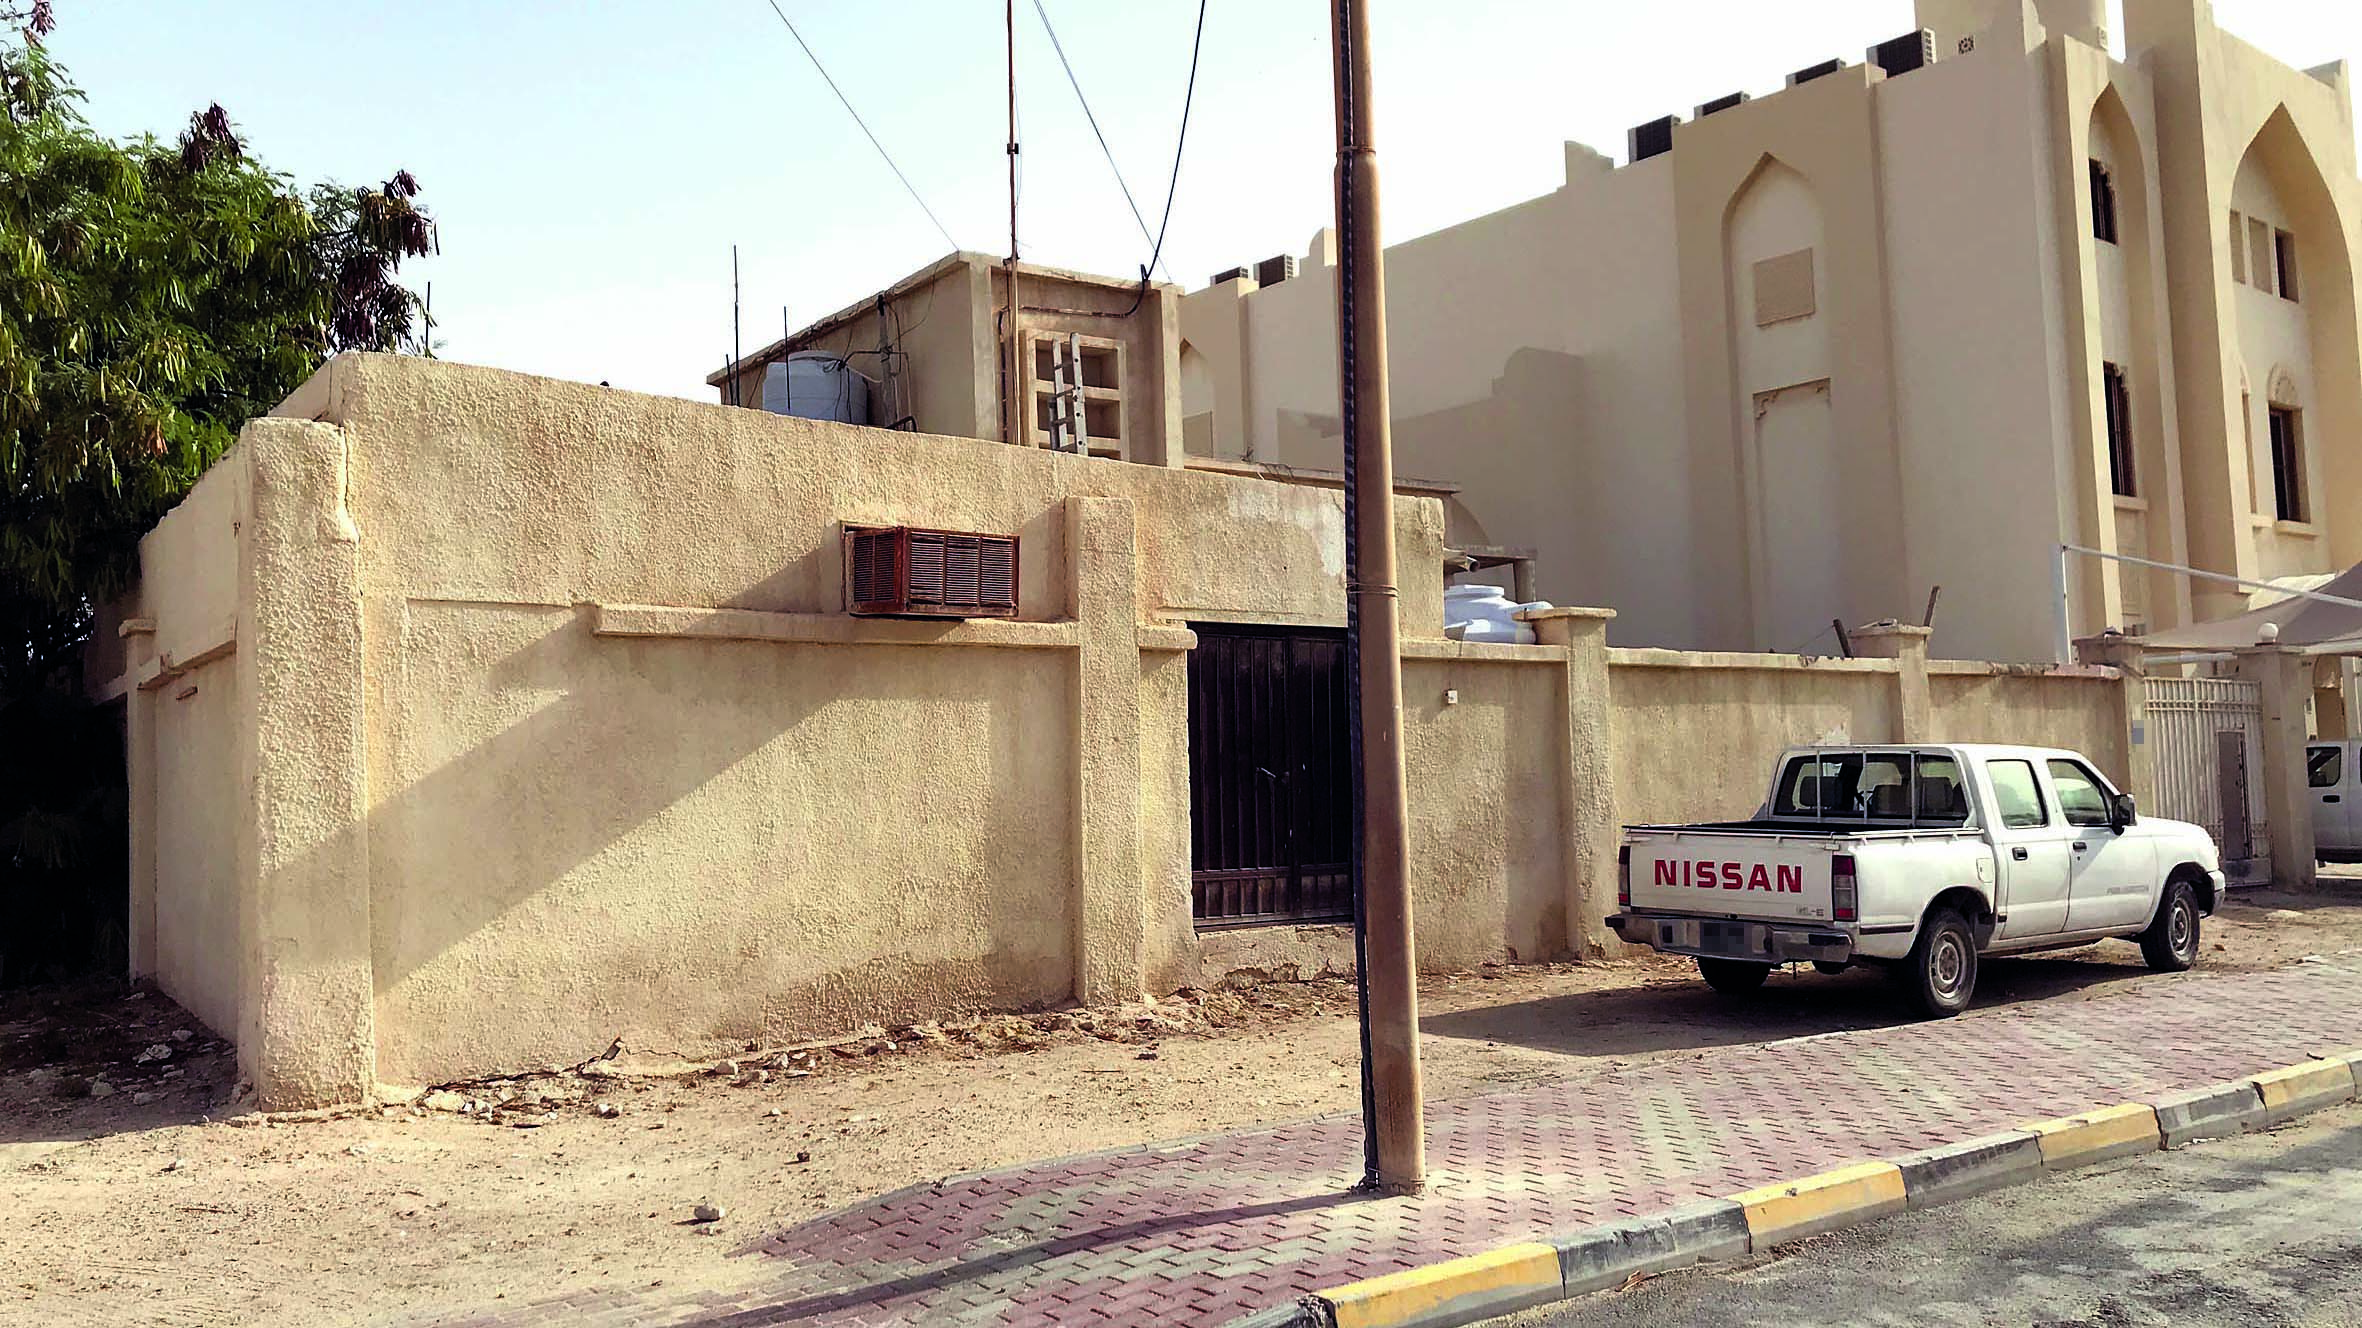 95 buildings distorting the landscape of Al Khor and Al Thakhira